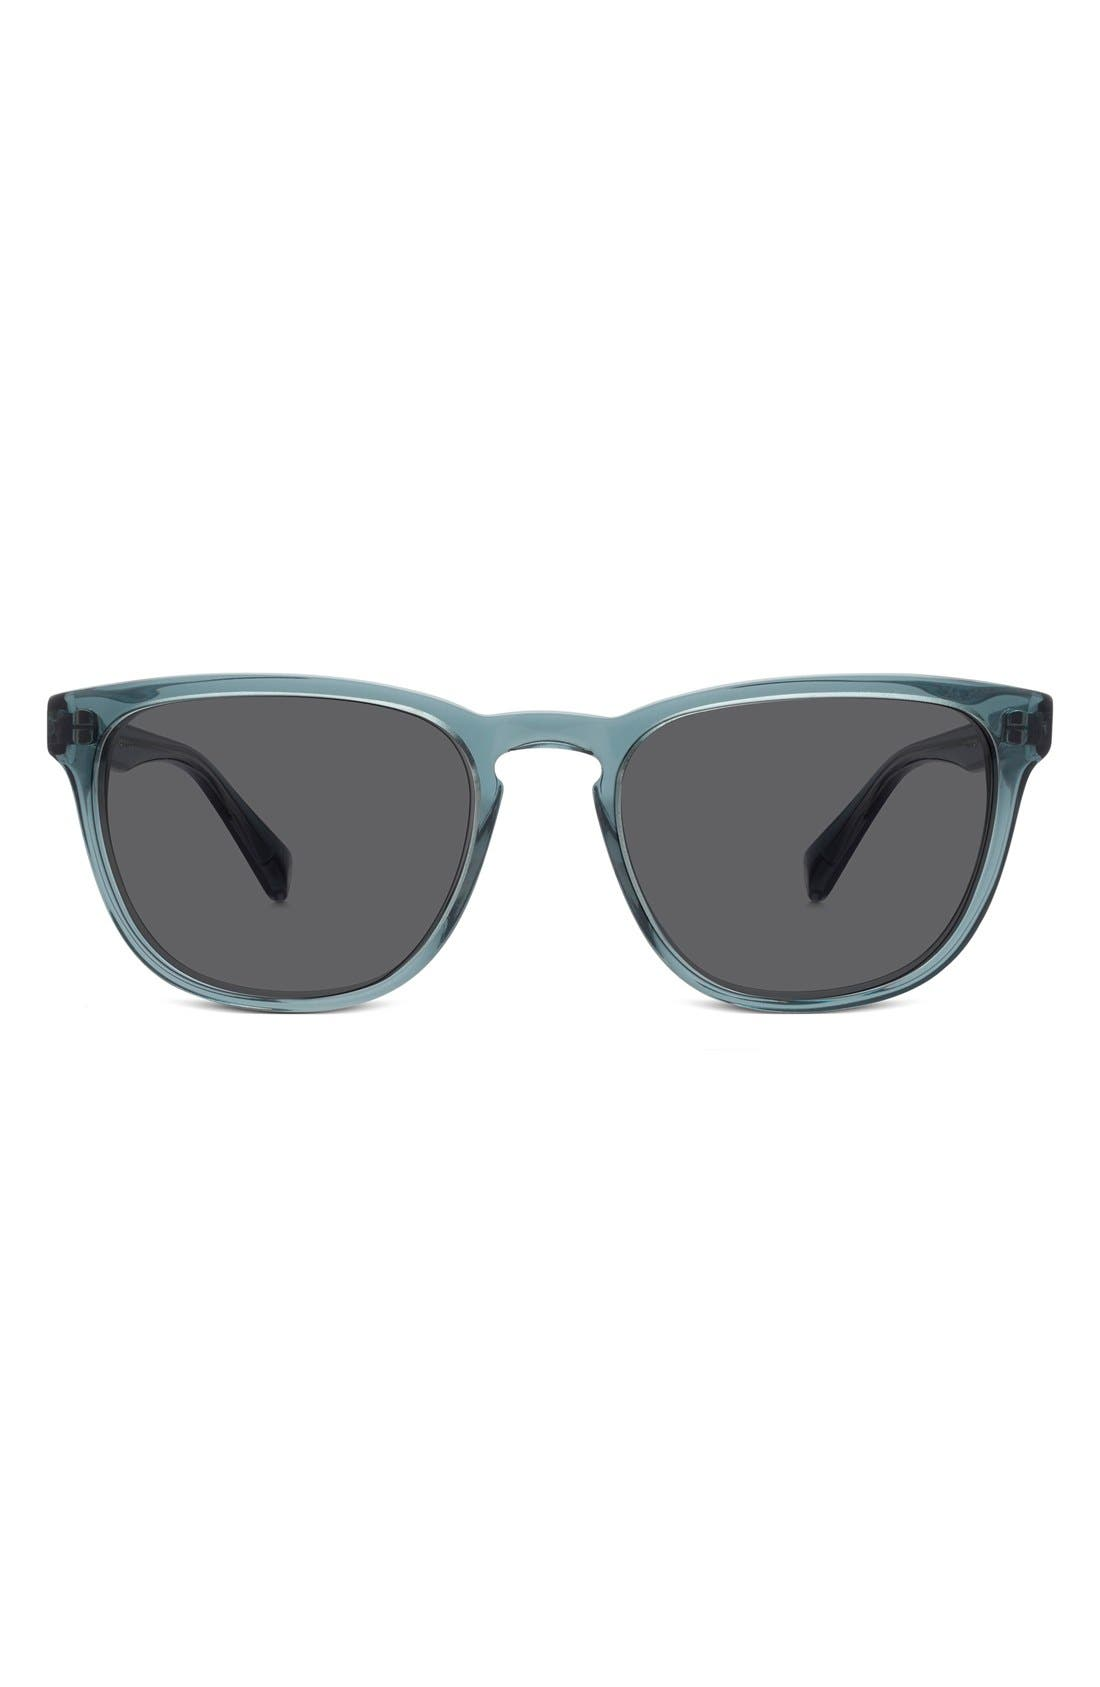 Main Image - Warby Parker 'Jennings' 53mm Polarized Sunglasses